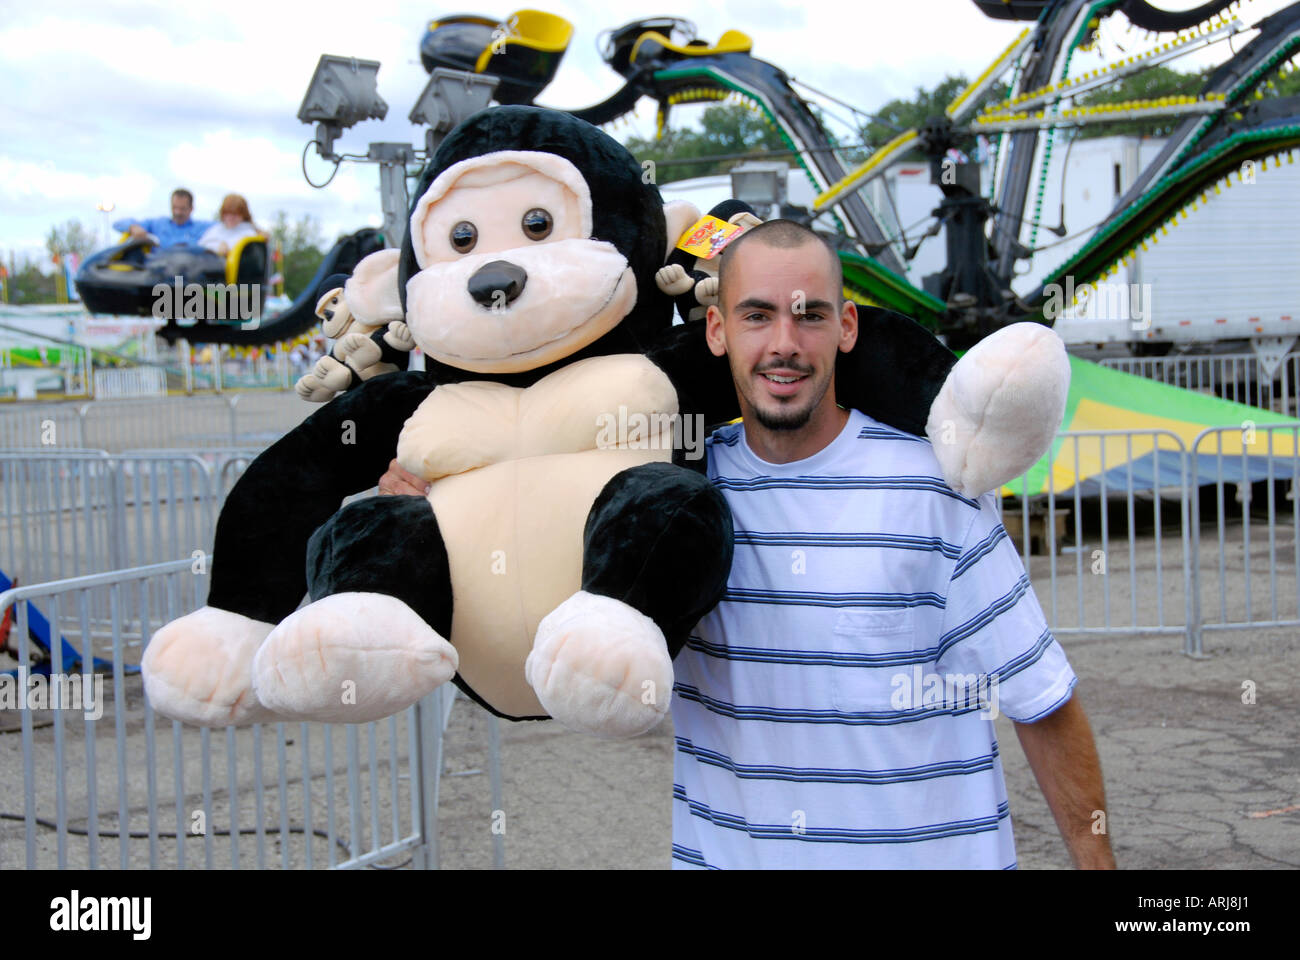 Adult male wins a large stuffed animal at the Michigan State Fair Held at Detroit Michigan MI - Stock Image